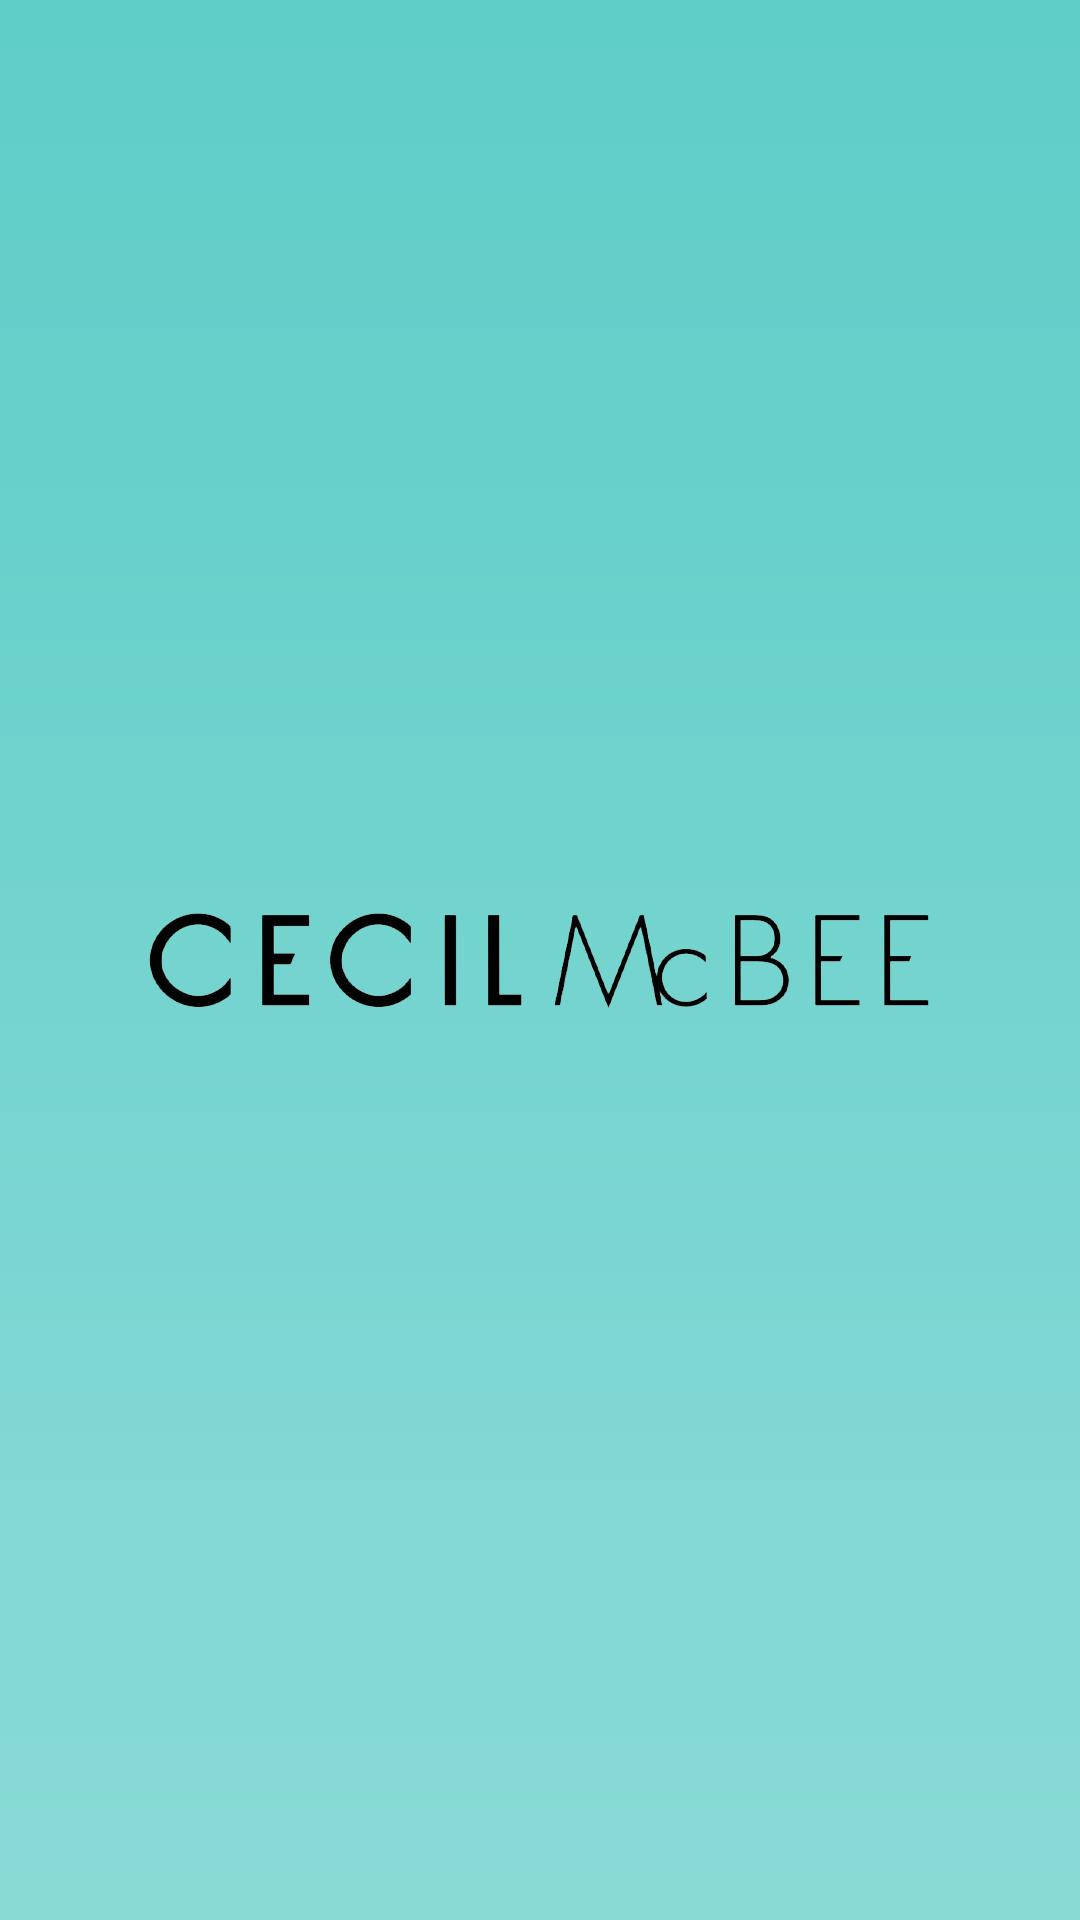 cecil00012 - セシルマクビー[CECIL McBEE]の高画質スマホ壁紙23枚 [iPhone&Androidに対応]